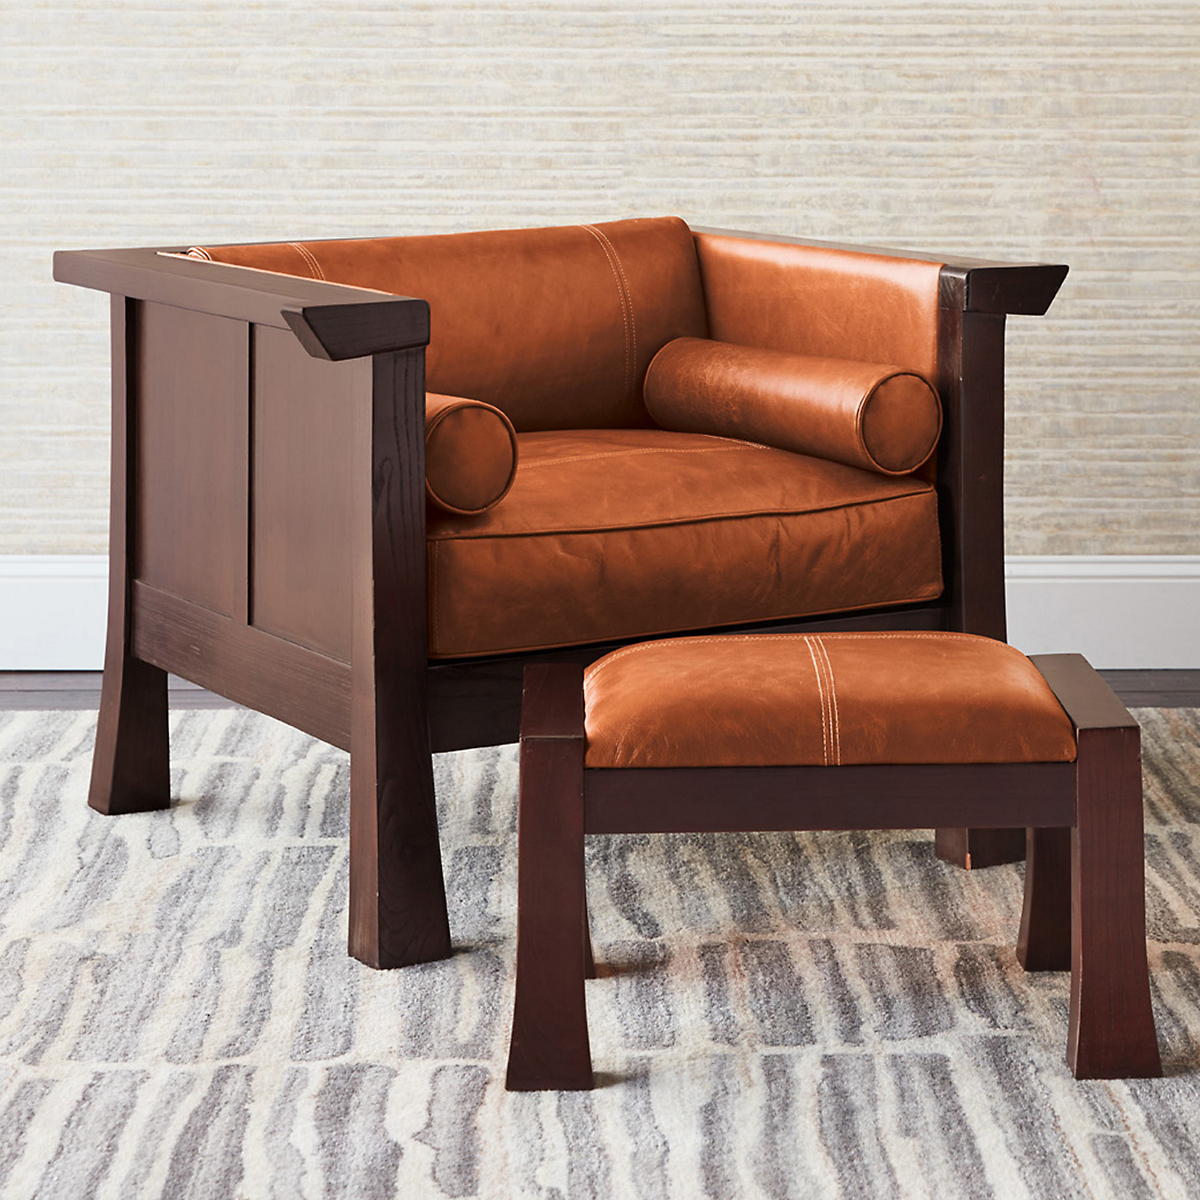 Maria Yee Cambria Chair & Ottoman, Sienna Leather